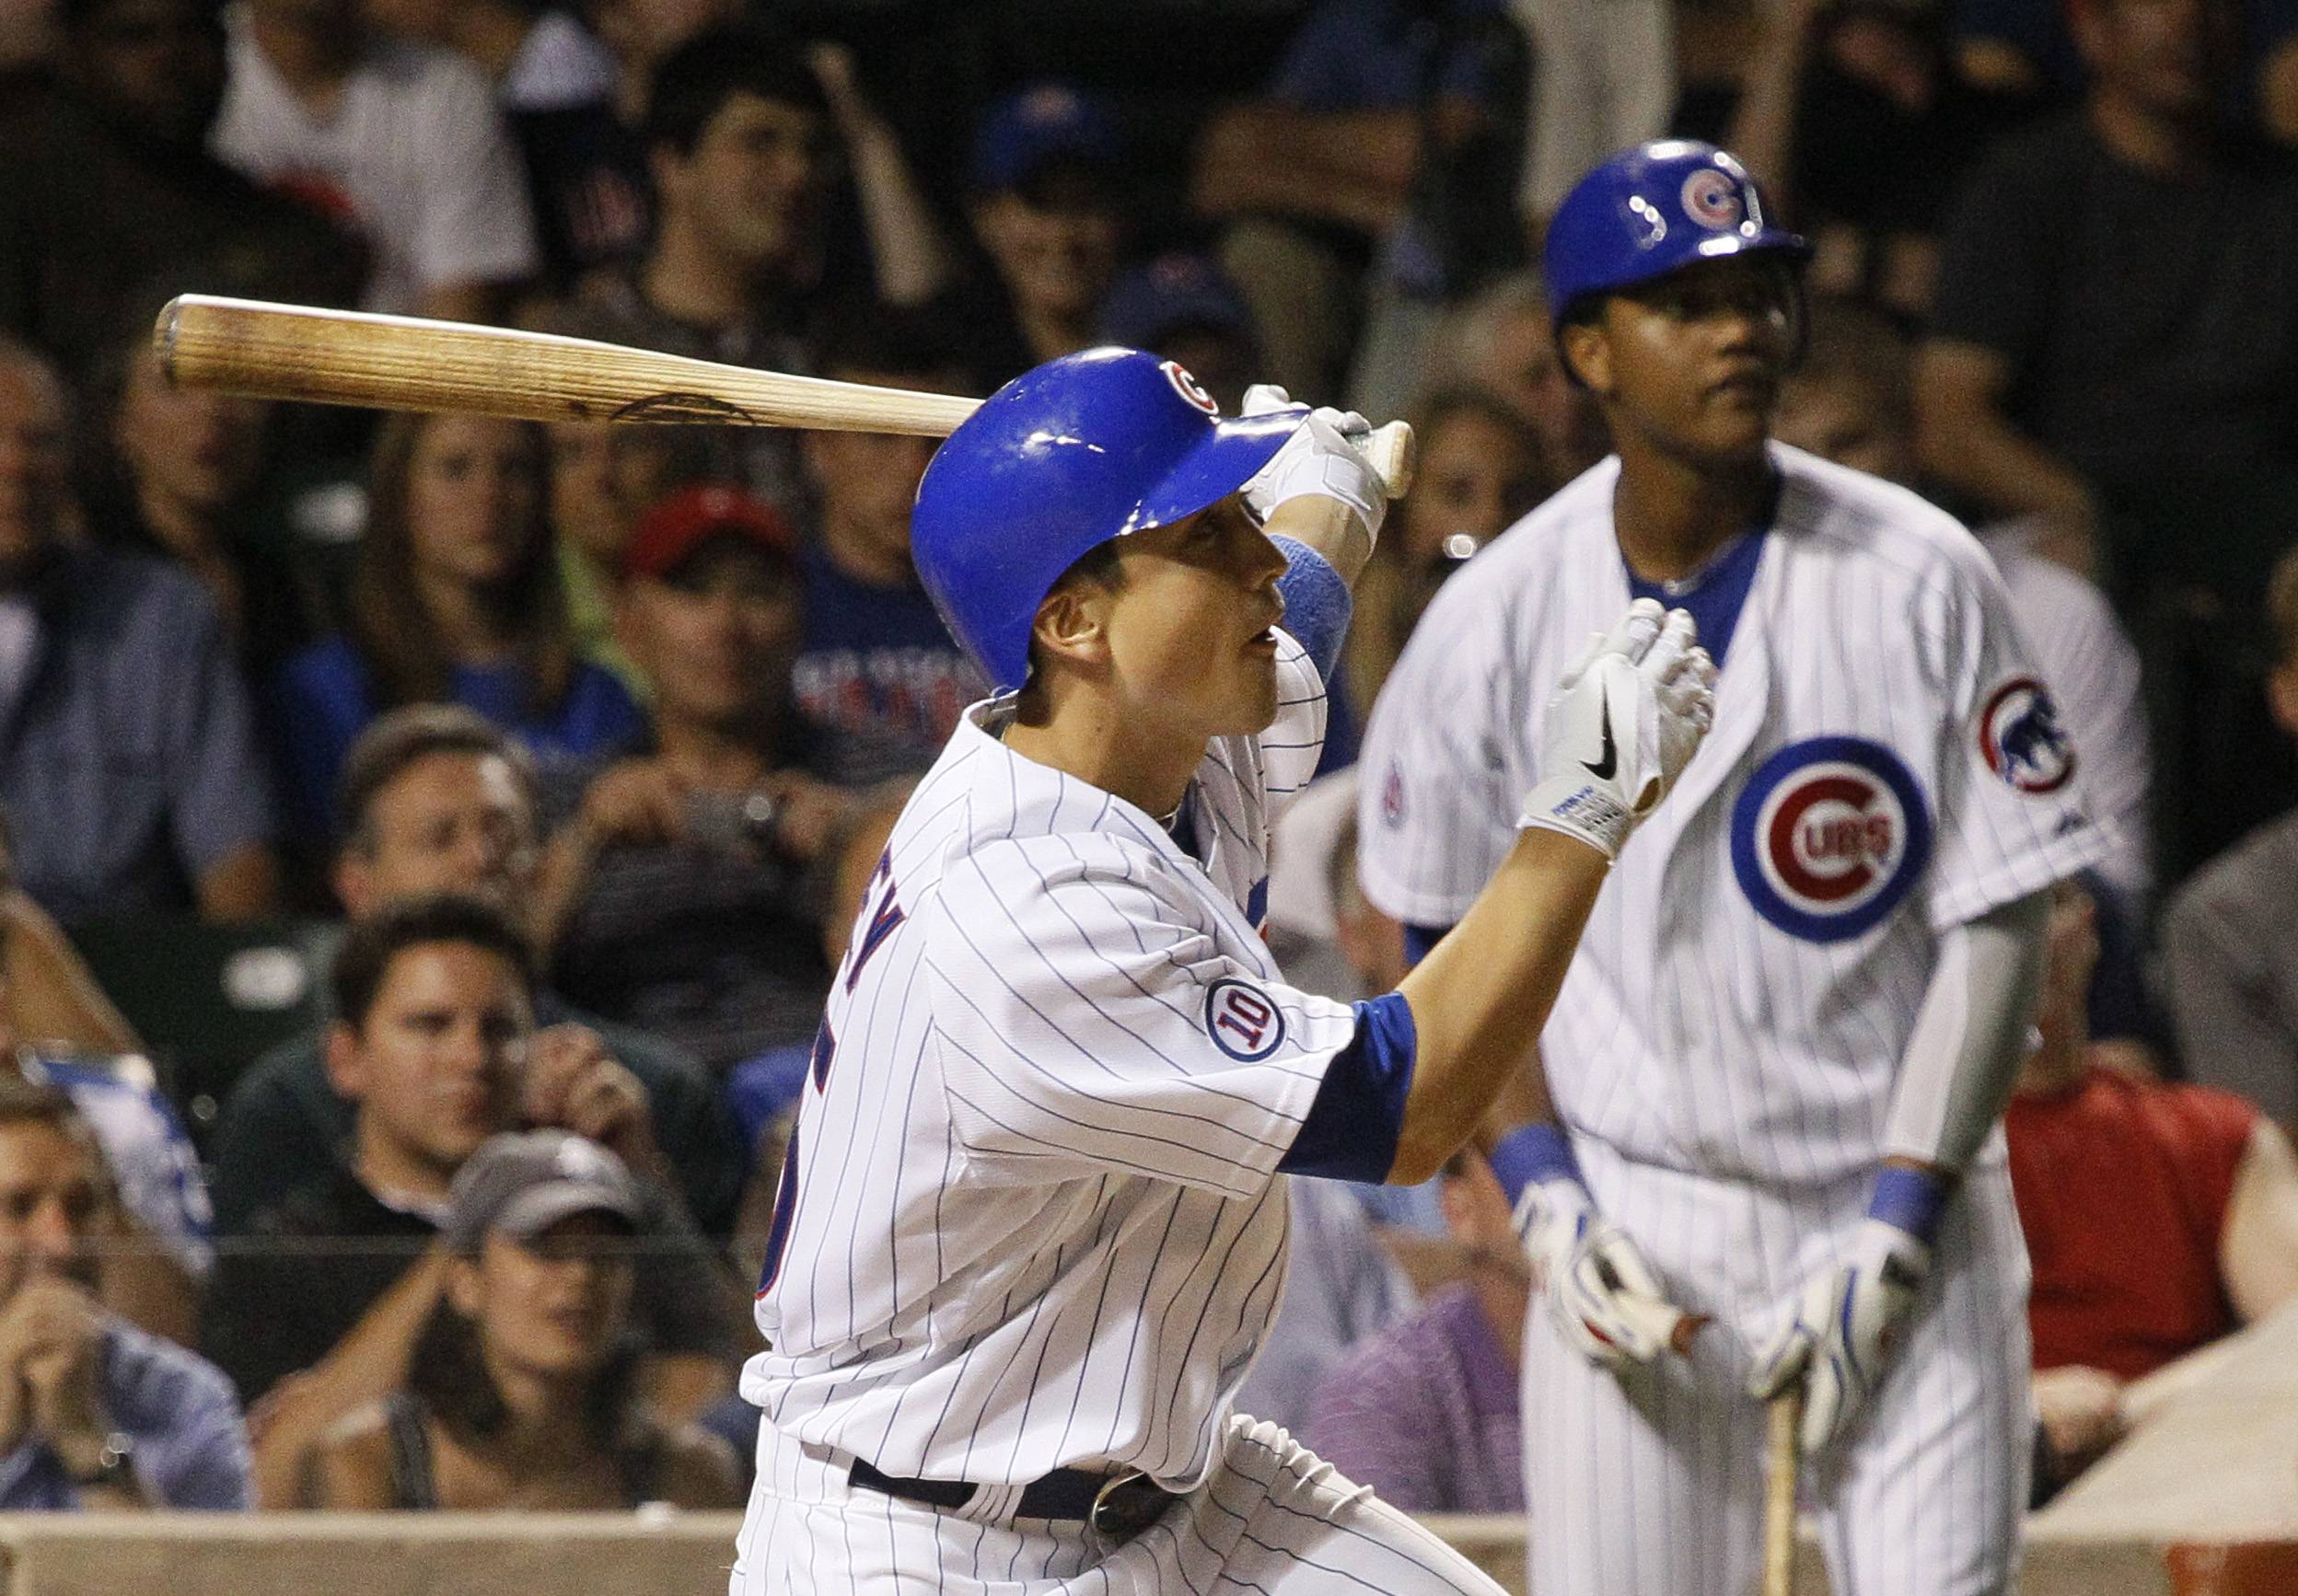 Darwin Barney follows through on an RBI double as Starlin Castro watches from the on deck circle during the eighth inning at Wrigley Field.